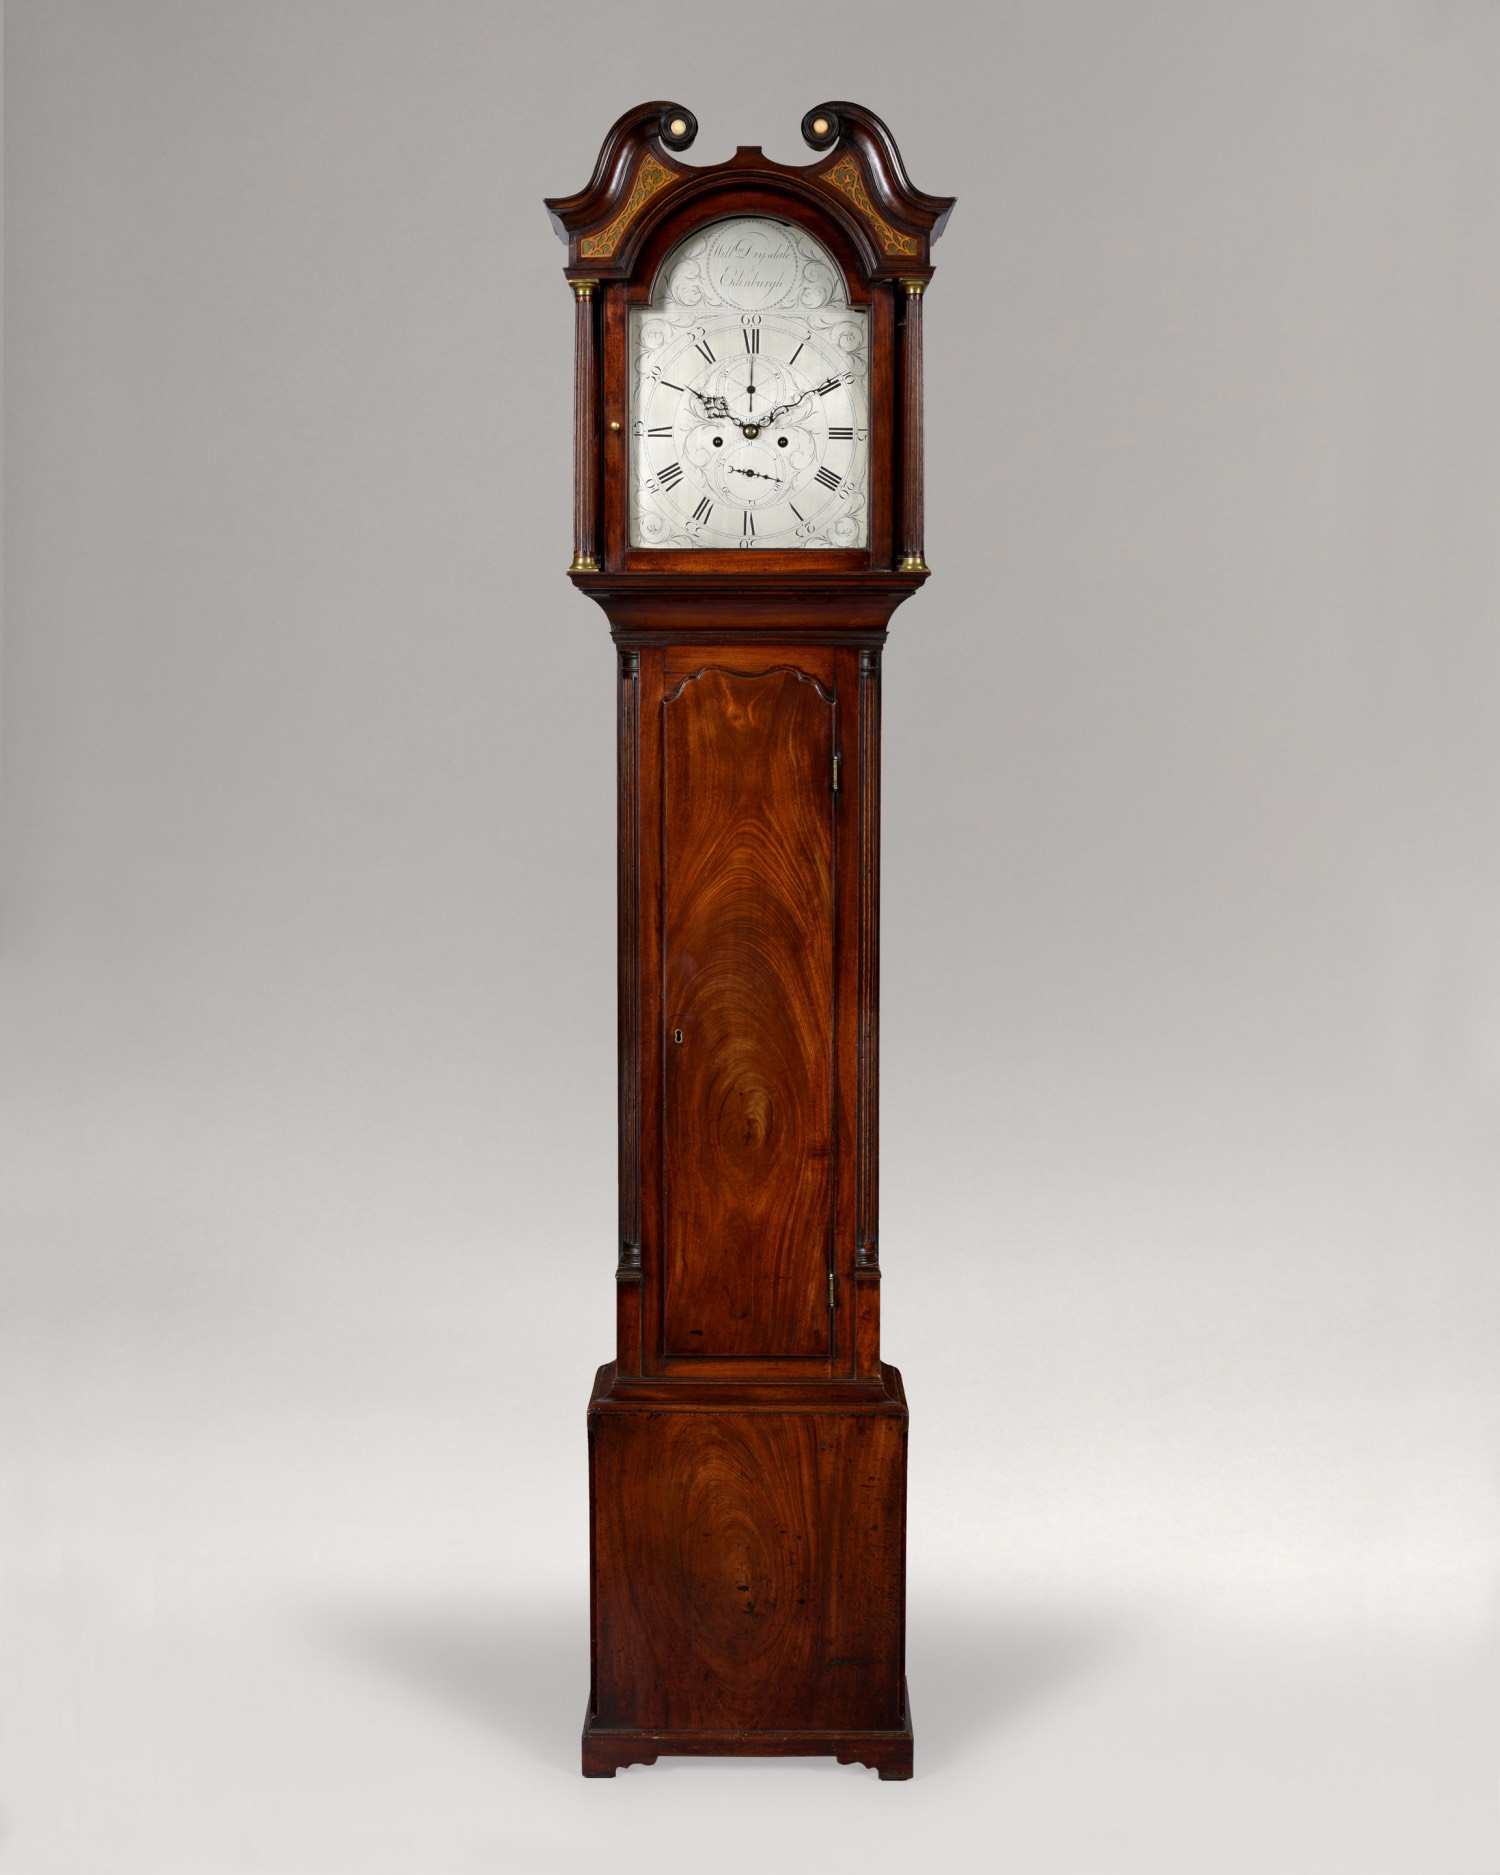 WILLIAM DRYSDALE. A FINE GEORGE III PERIOD SCOTTISH SILVERED DIAL LONGCASE.